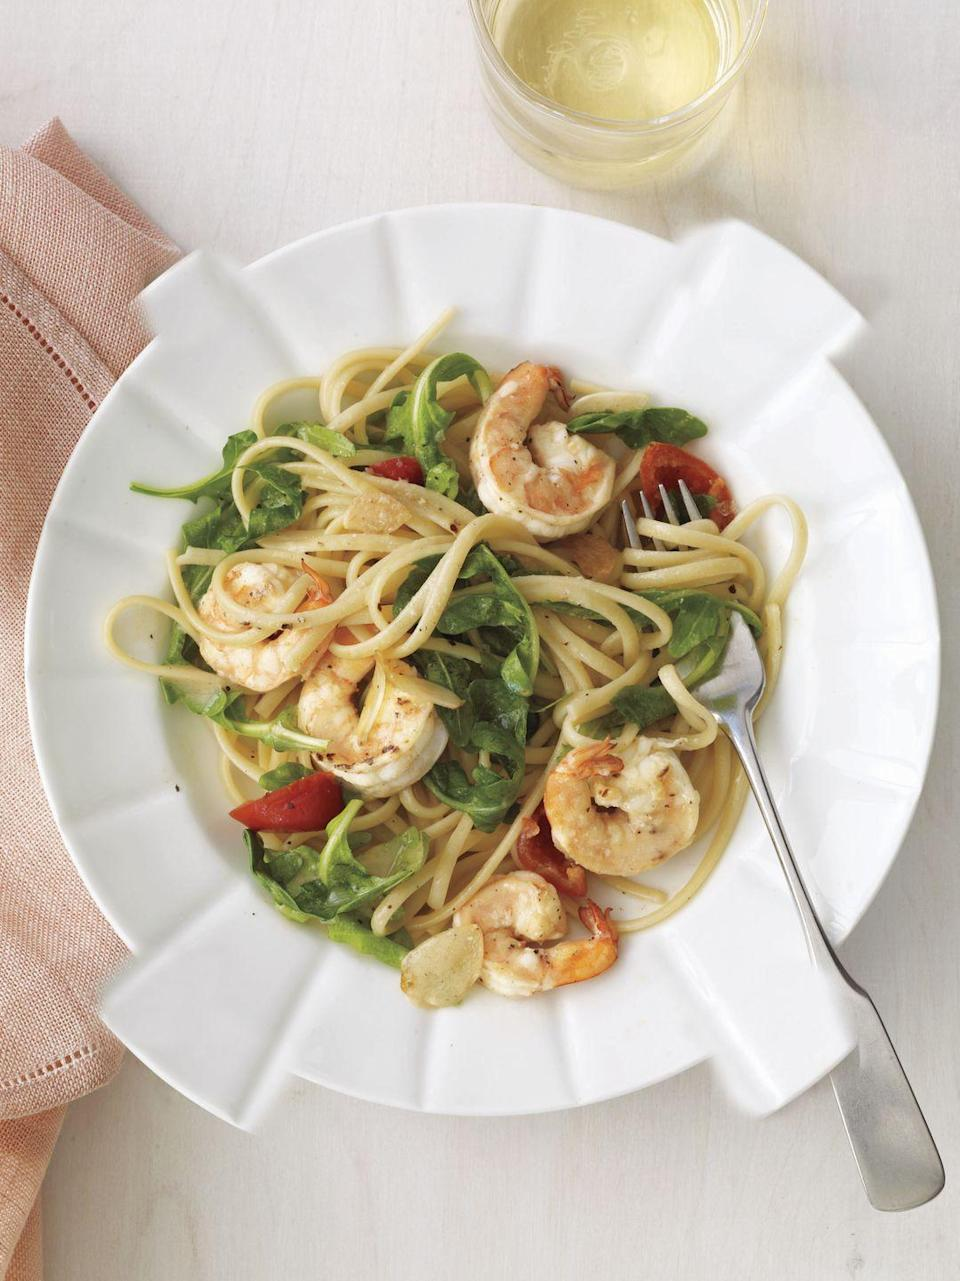 """<p>Fast, light and filled with sweet-hot flavor, this heart-healthy pasta gets everything you need for dinner in one bowl: greens, grains and protein in the form of briny, plump shrimp.</p><a href=""""https://www.womansday.com/food-recipes/food-drinks/recipes/a11987/shrimp-cherry-pepper-and-arugula-linguine-recipe/"""" rel=""""nofollow noopener"""" target=""""_blank"""" data-ylk=""""slk:Get the recipe for Shrimp, Cherry Pepper, and Arugula Linguine."""" class=""""link rapid-noclick-resp""""><em>Get the recipe for Shrimp, Cherry Pepper, and Arugula Linguine.</em></a><br>"""